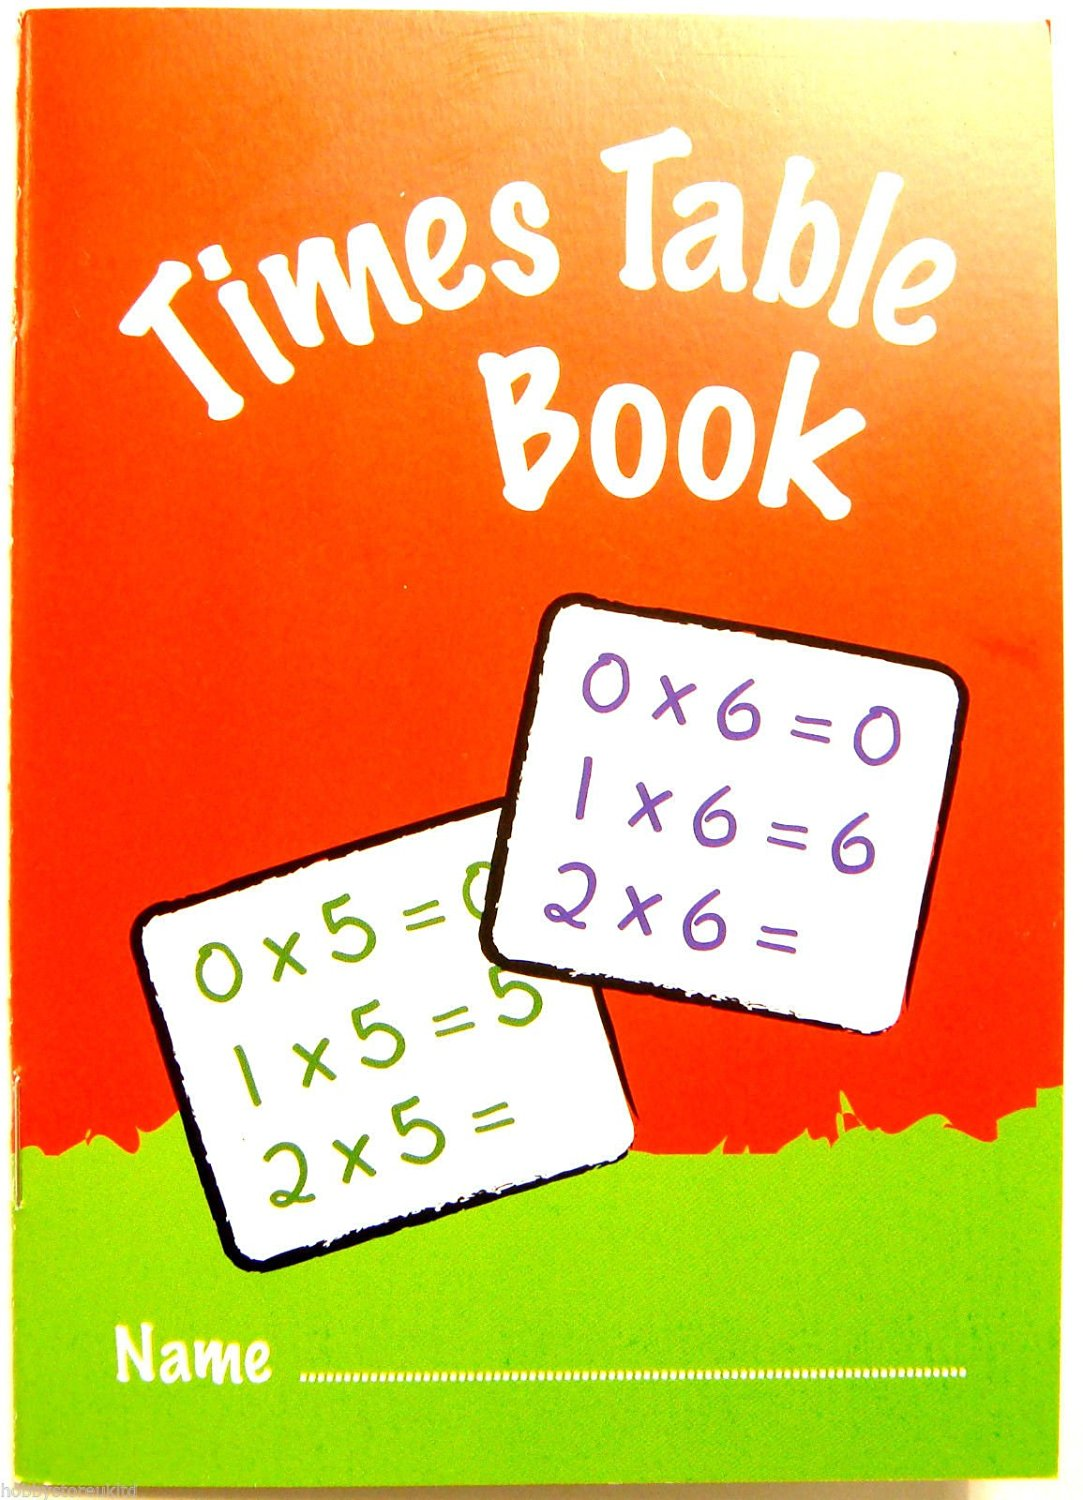 Cheap 20 x 20 times table find 20 x 20 times table deals on line get quotations childrens mathematics times table book childrens easy early learning 1 20 times table soft cover nvjuhfo Image collections